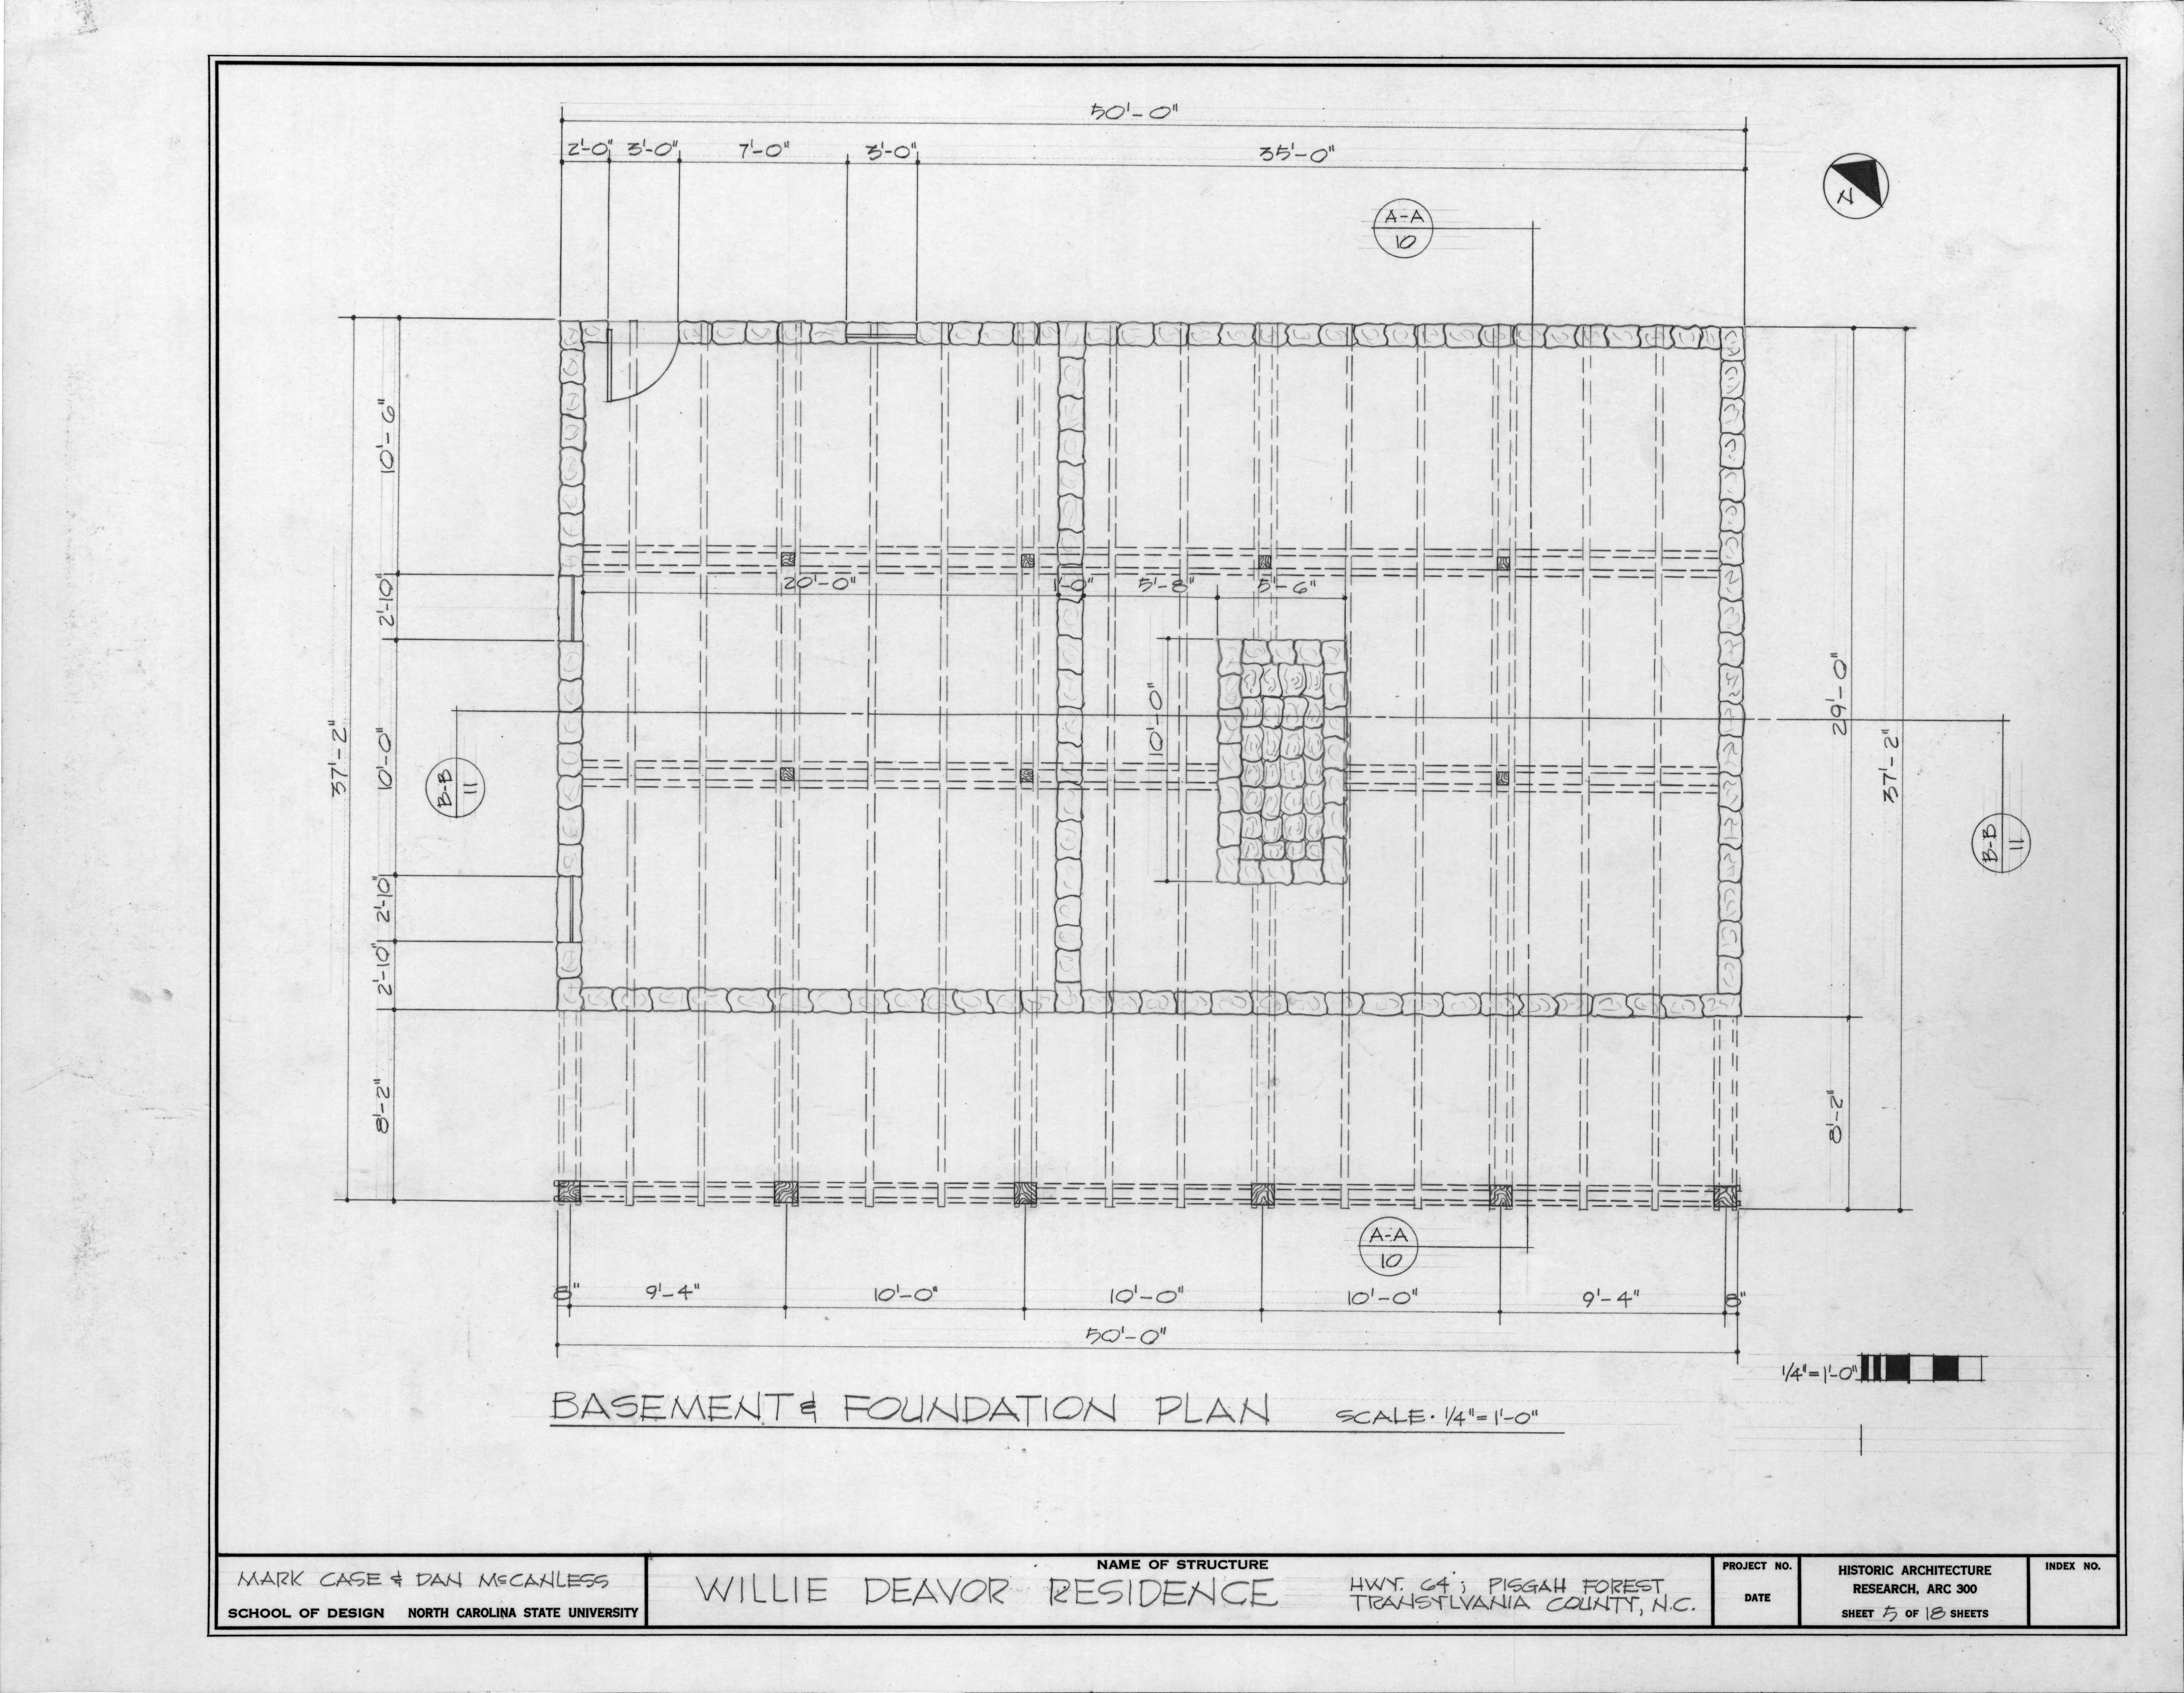 Foundation Plan Allison Deaver House Transylvania County